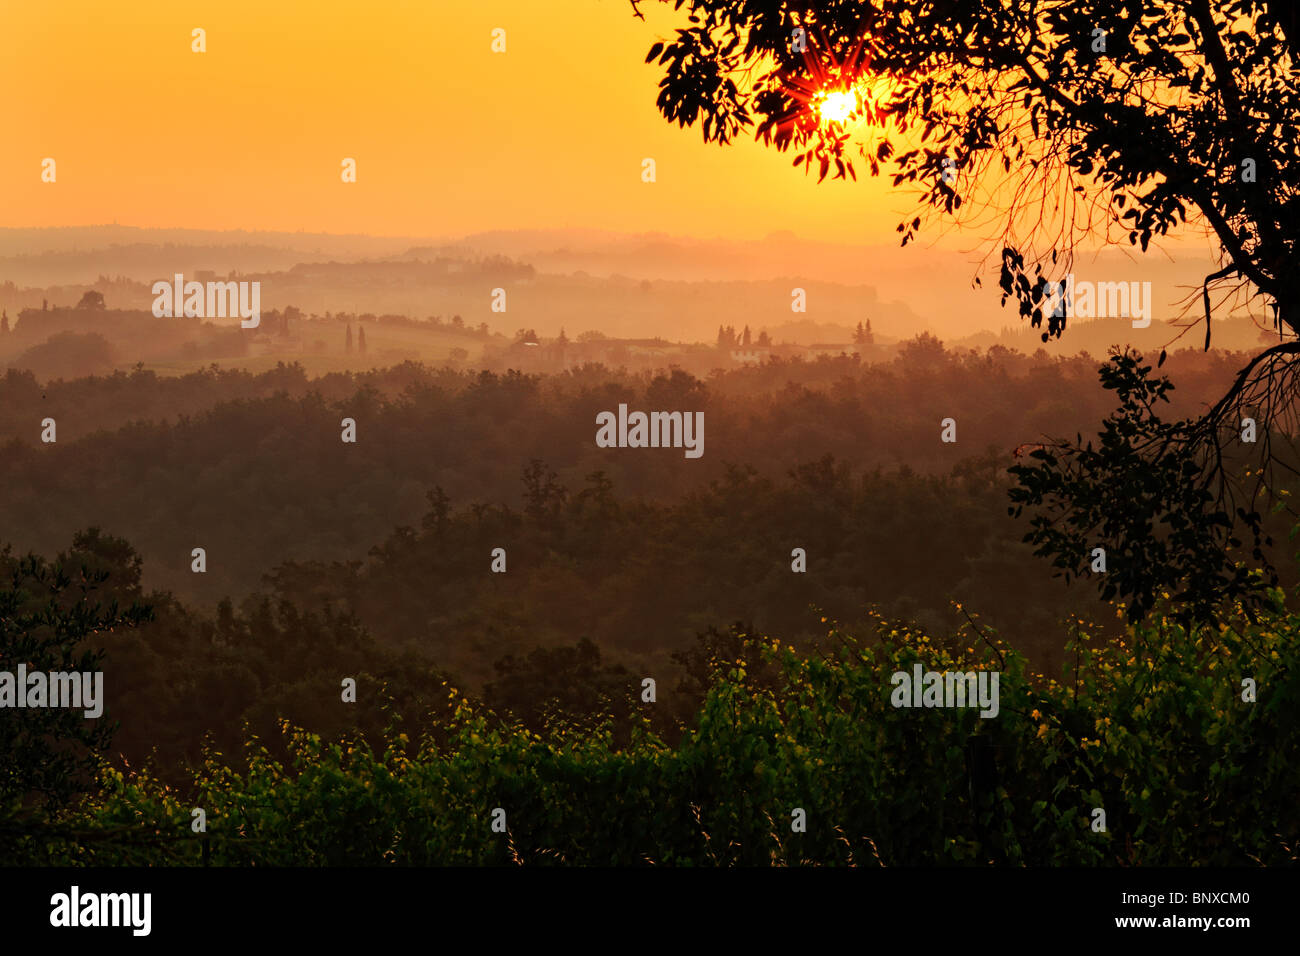 Tuscan landscape surrounding San Gimignano, Italy at sunrise - Stock Image